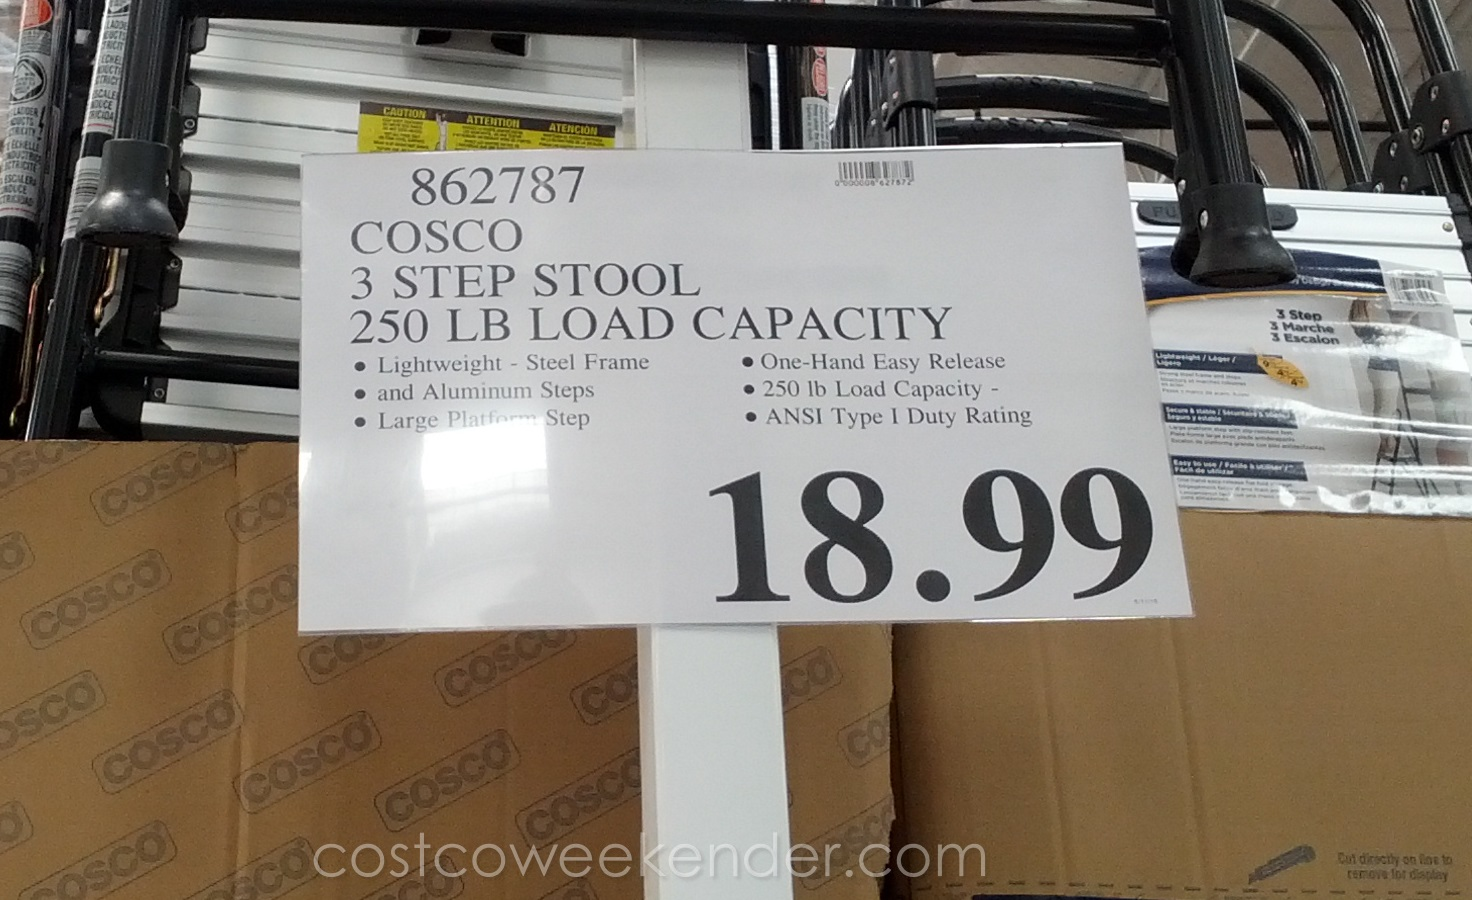 Cosco 3 Step Stool Costco Weekender